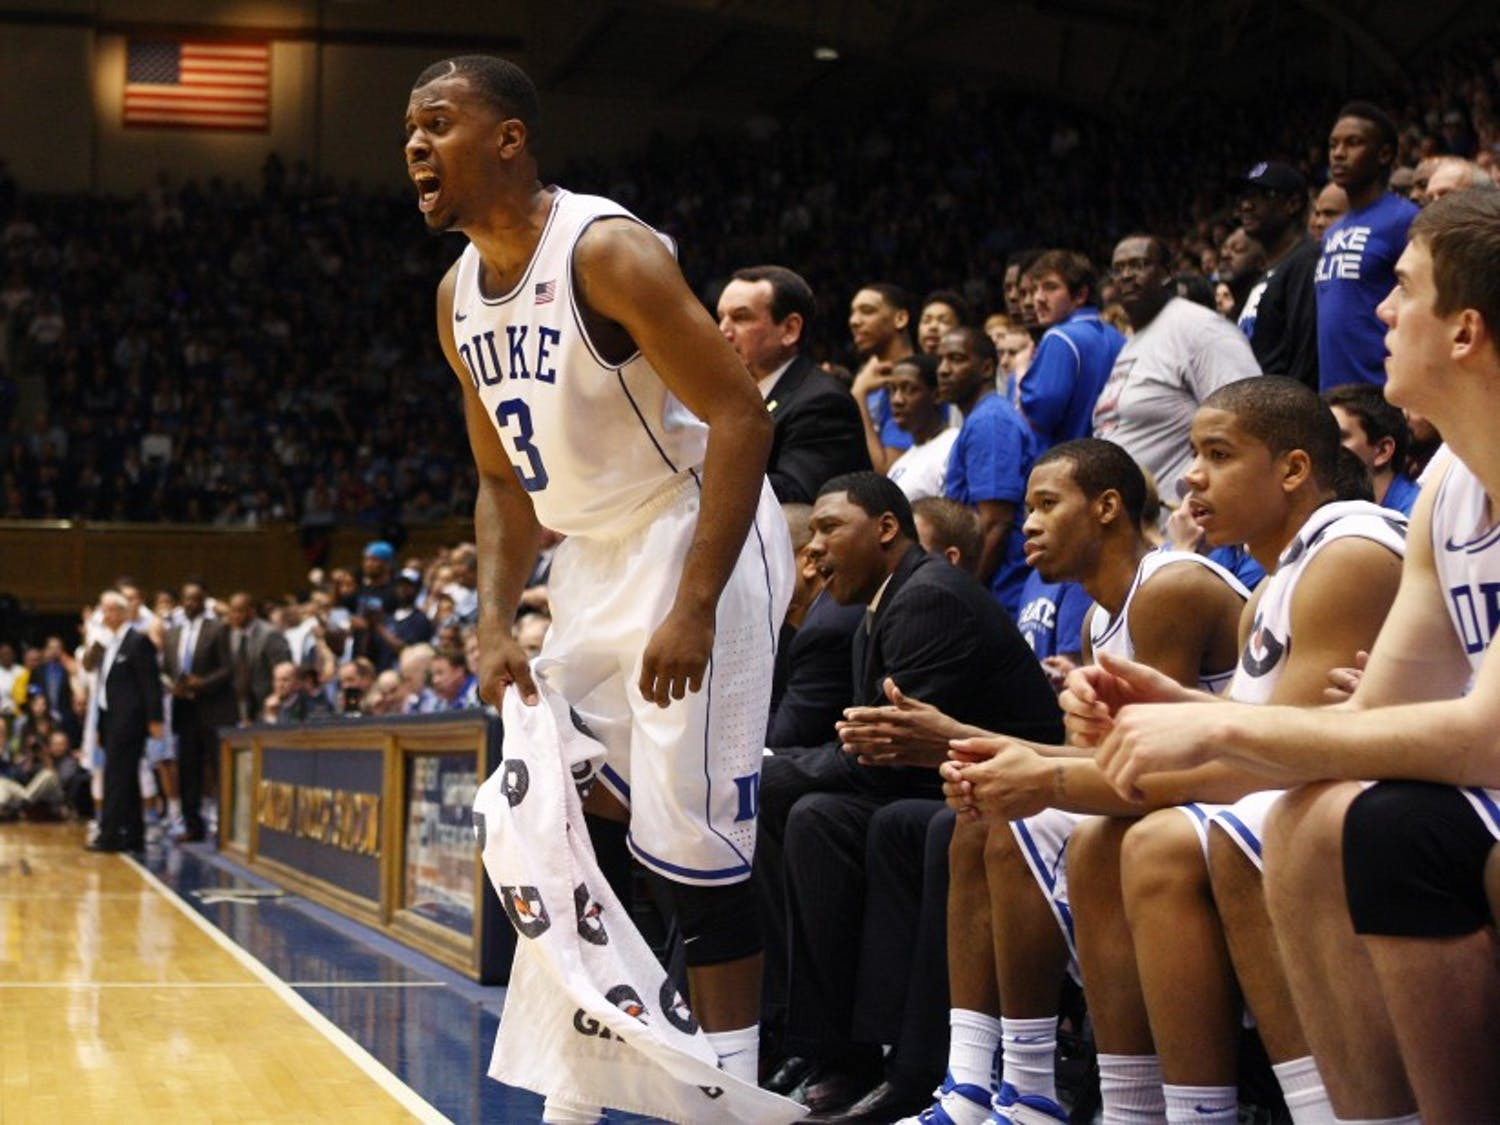 Tyler Thornton's leadership could make him a candidate to fill the void left by Steve Wojciechowski on the Duke sideline.